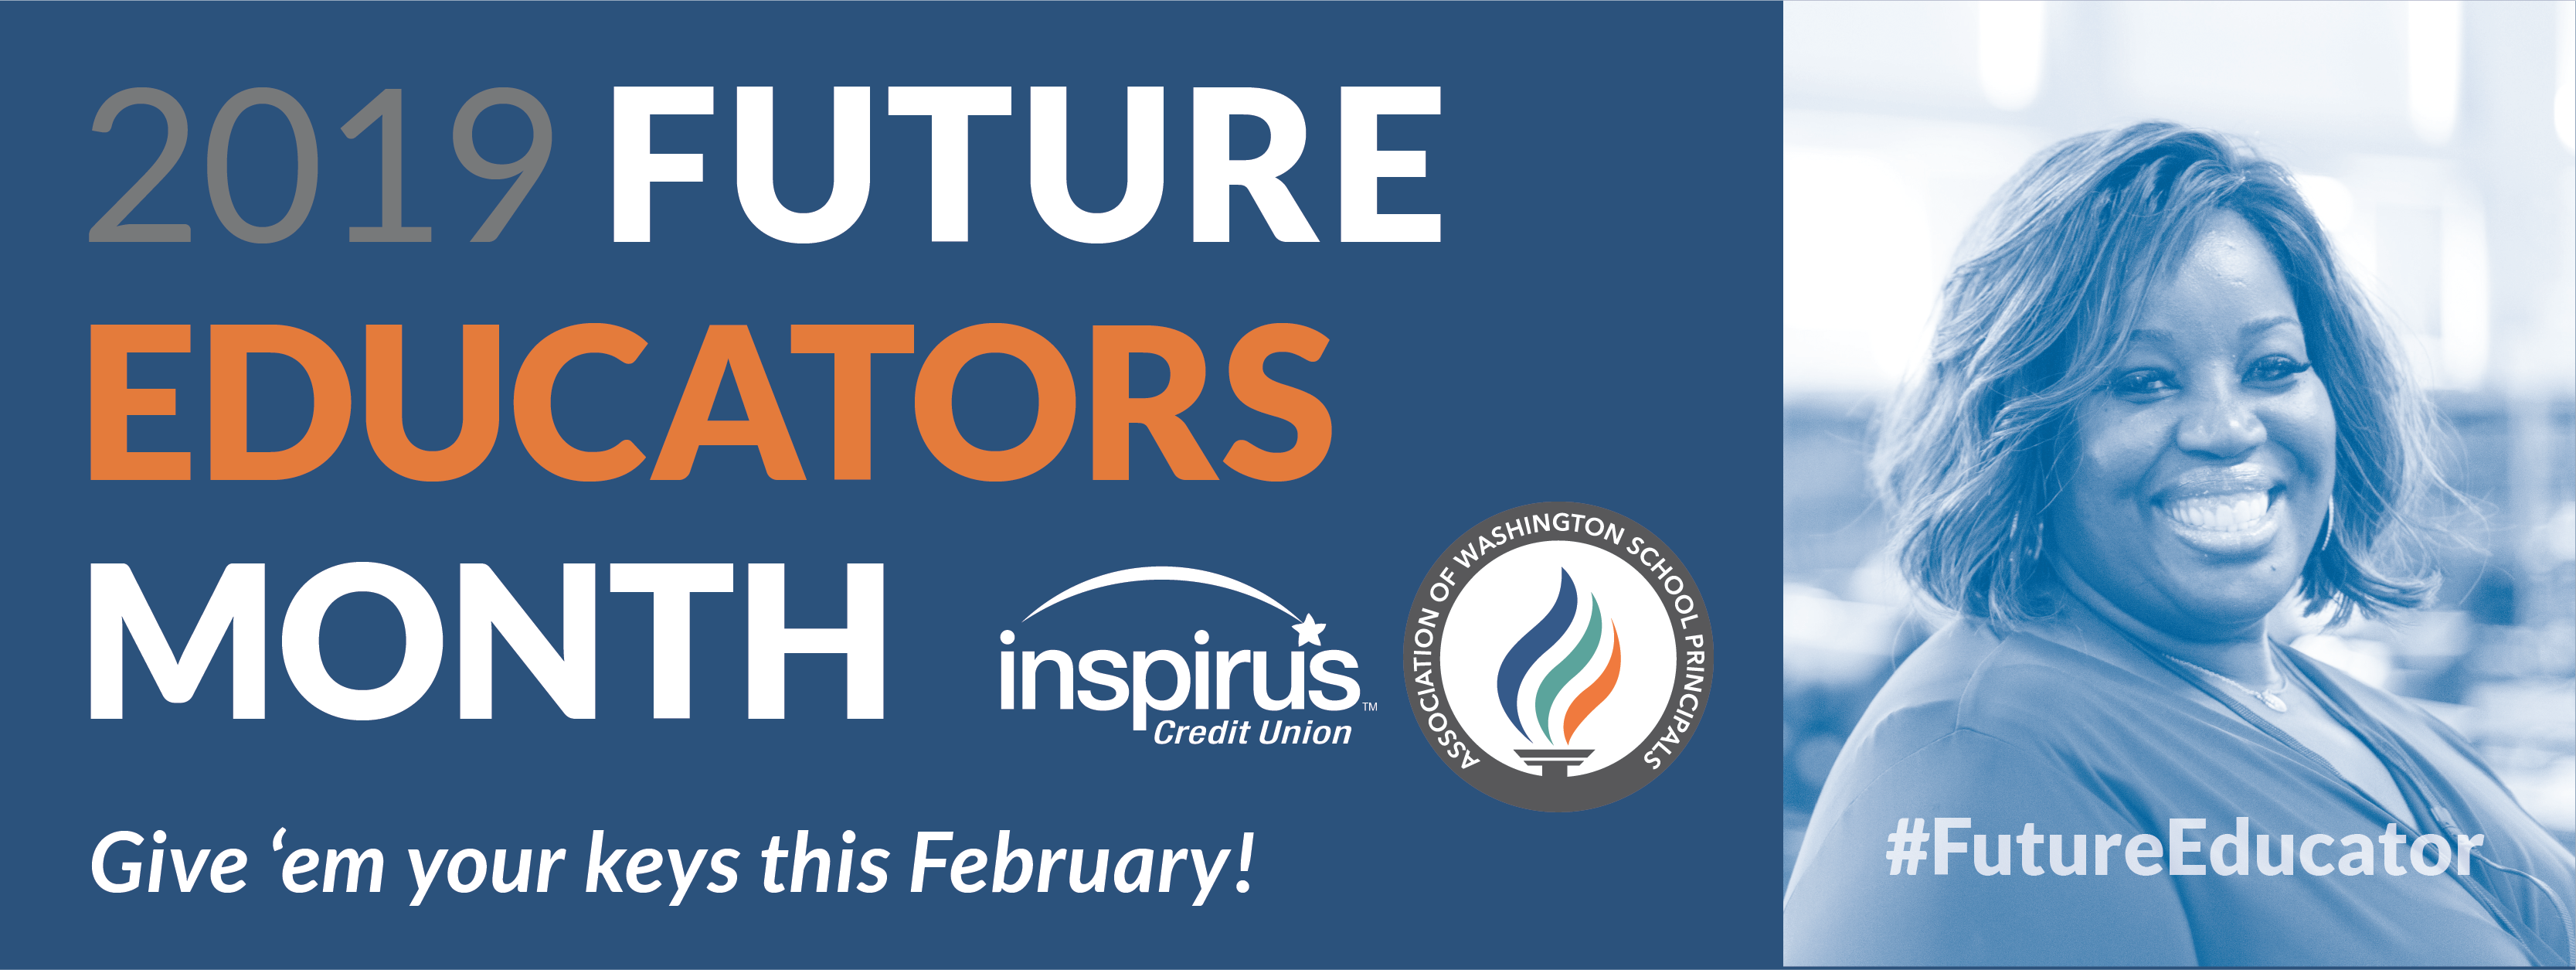 future educators month graphic_INSPIRUS_edited